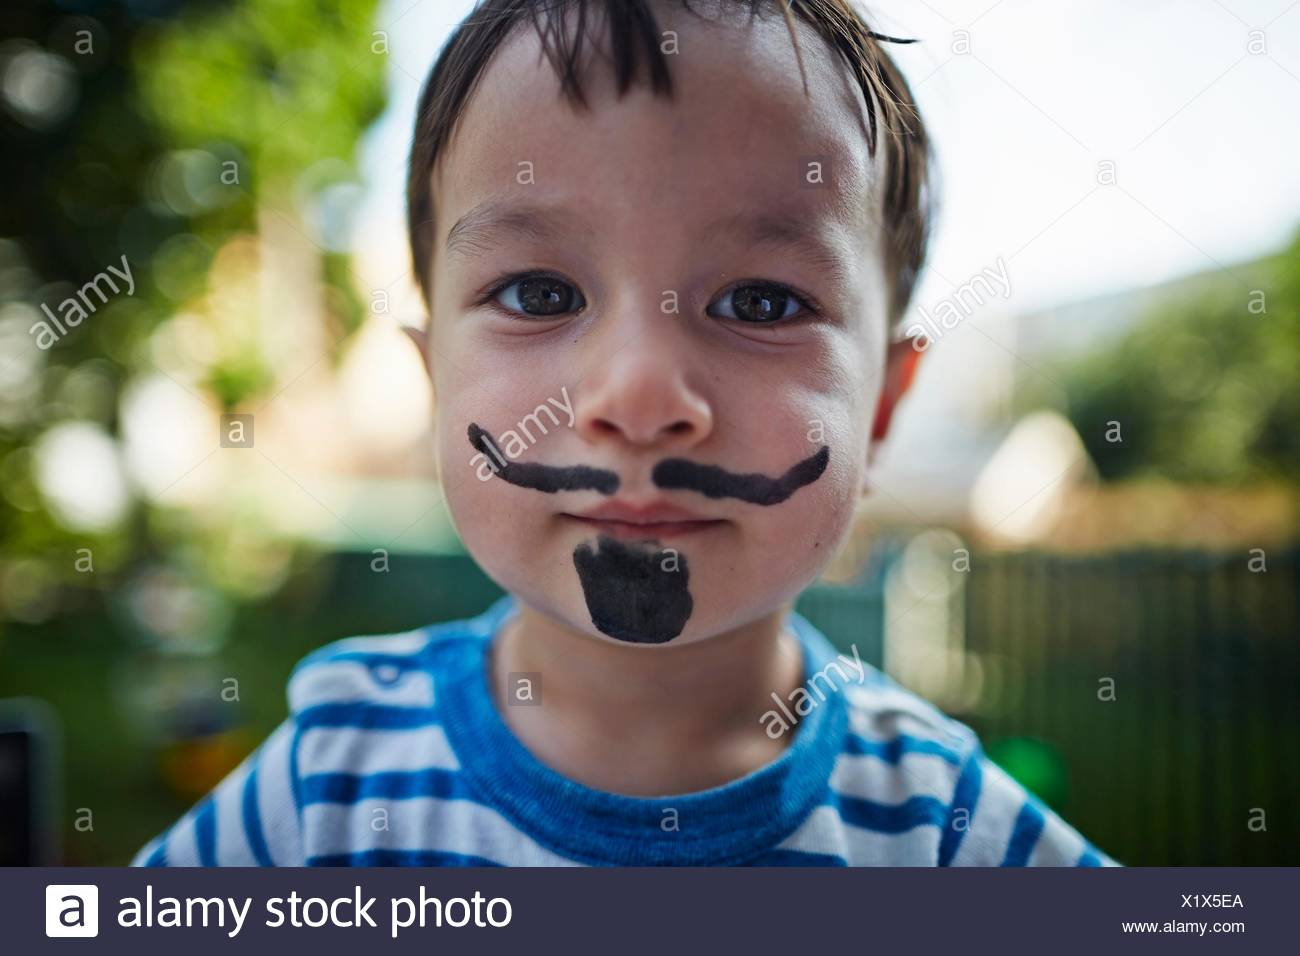 Close up portrait of boy looking at camera wearing beard and moustache face paint costume - Stock Image